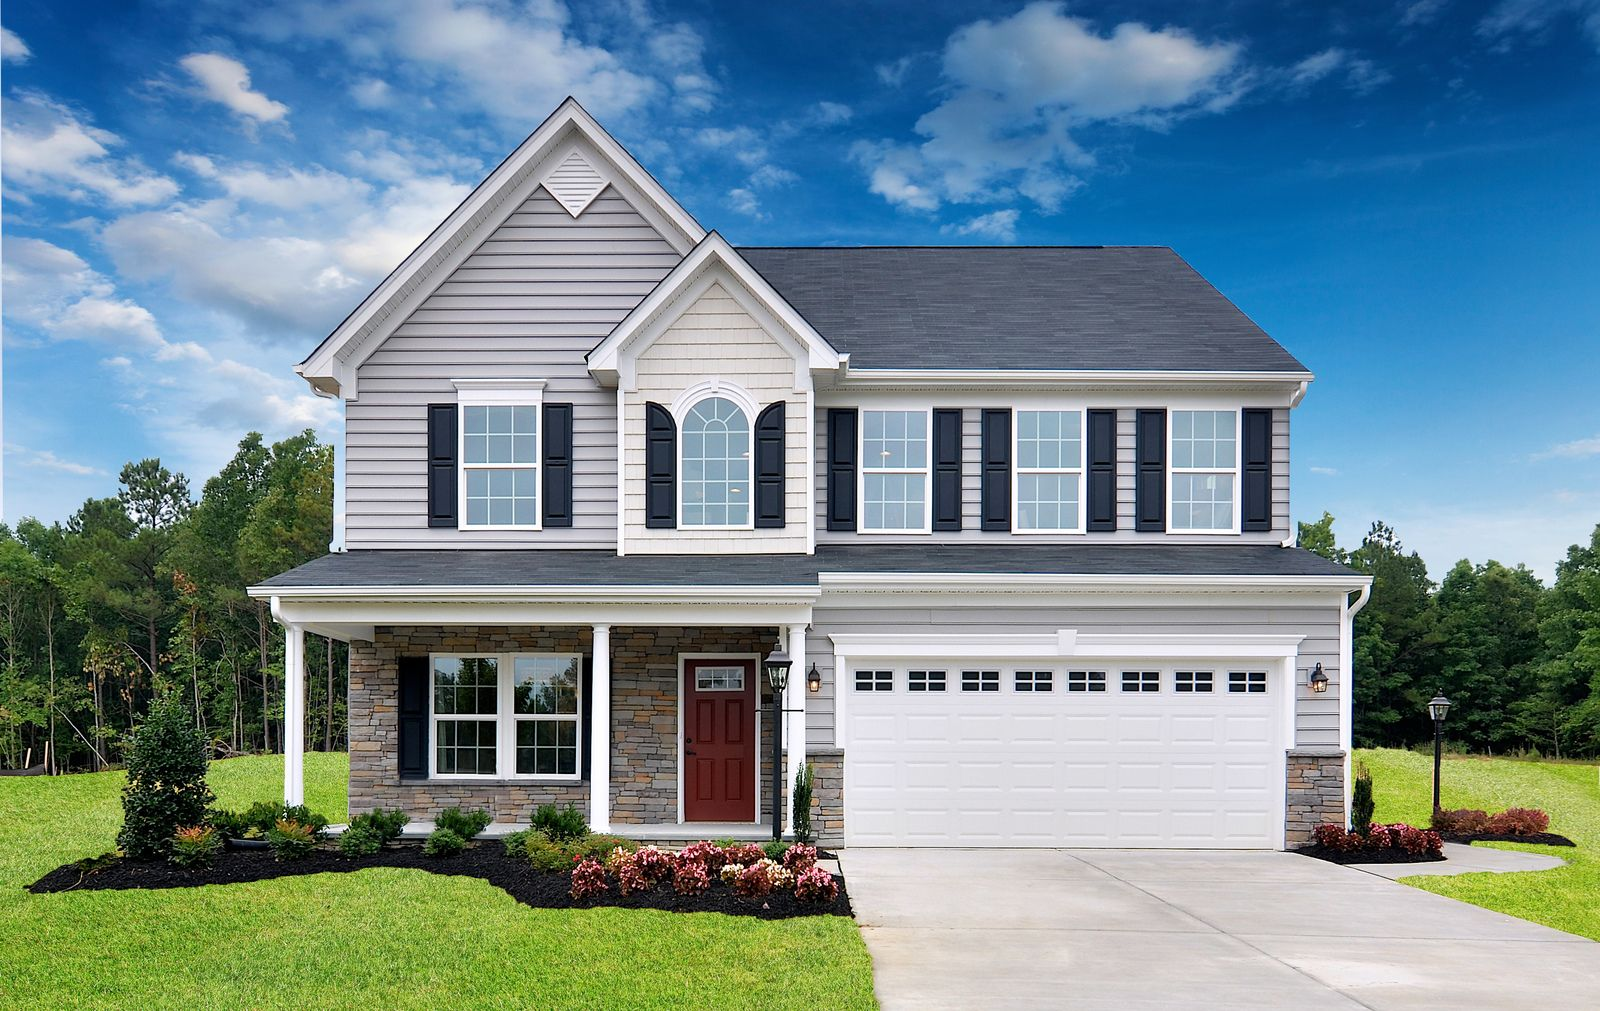 Single Family for Sale at Rainwater - Milan 110 Santa Anna Way Duncan, South Carolina 29334 United States